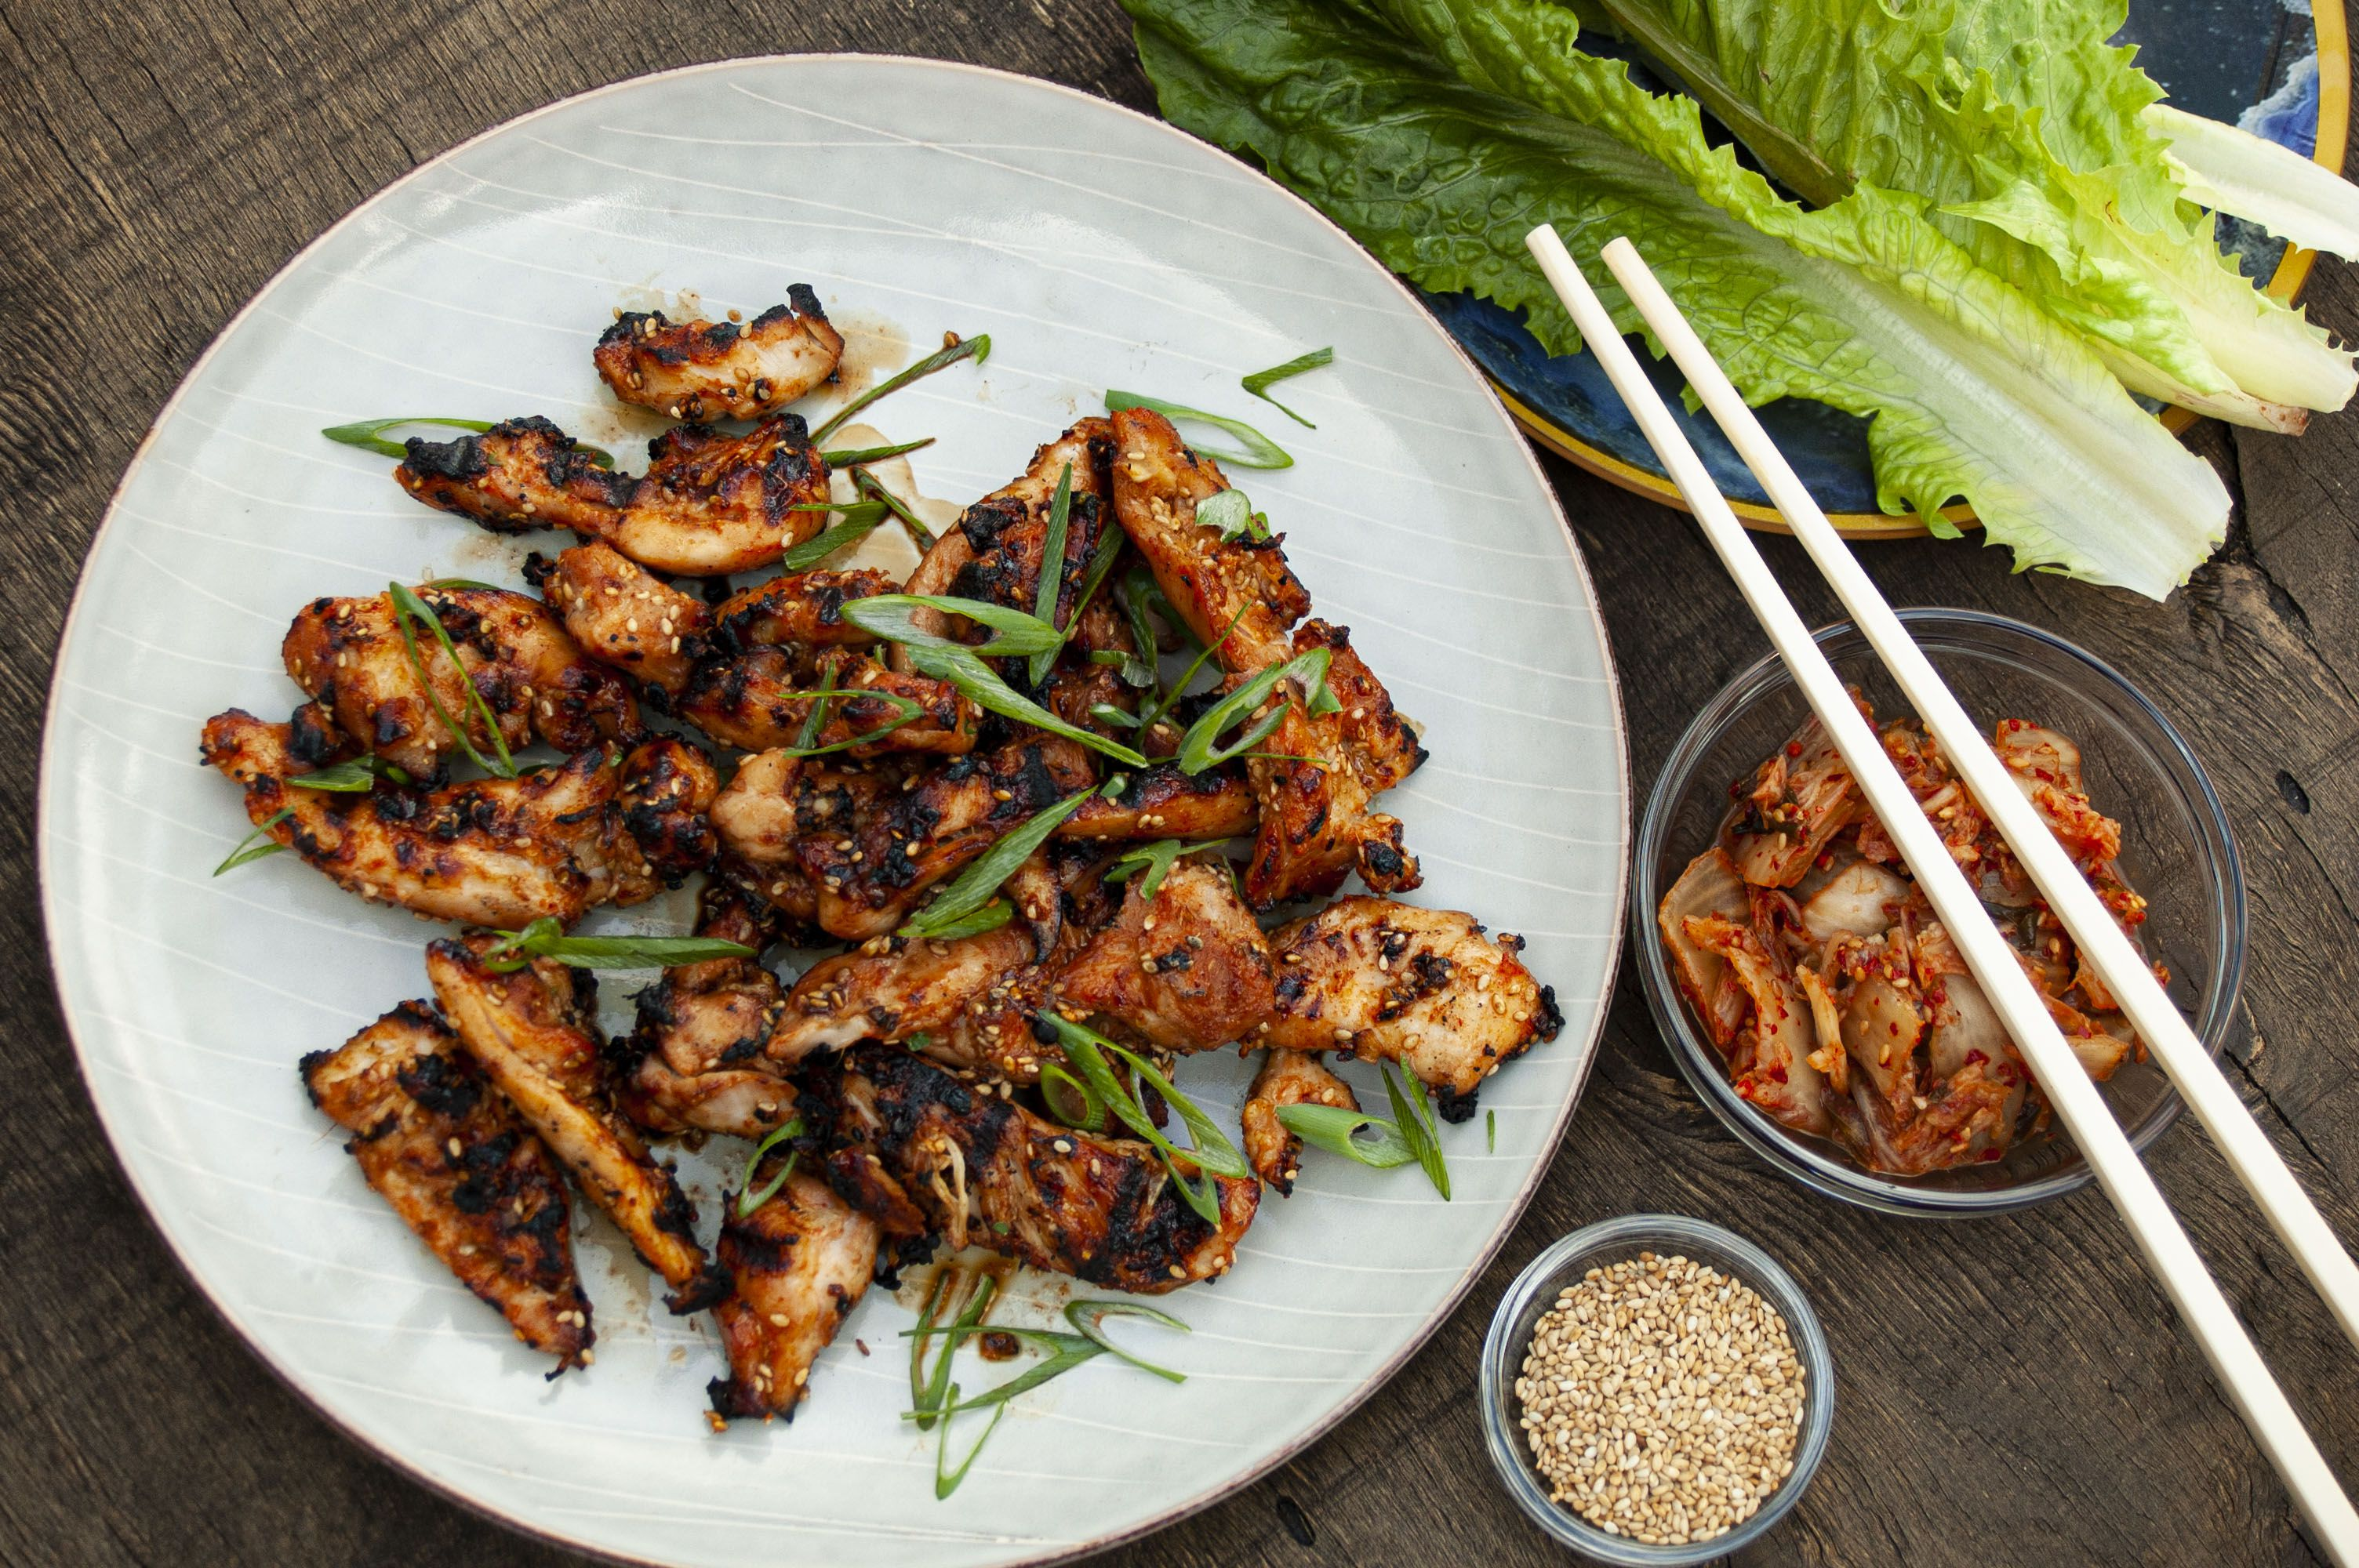 Bulgogi-Style Chicken Is Spicy, Smoky, and Simple to Make